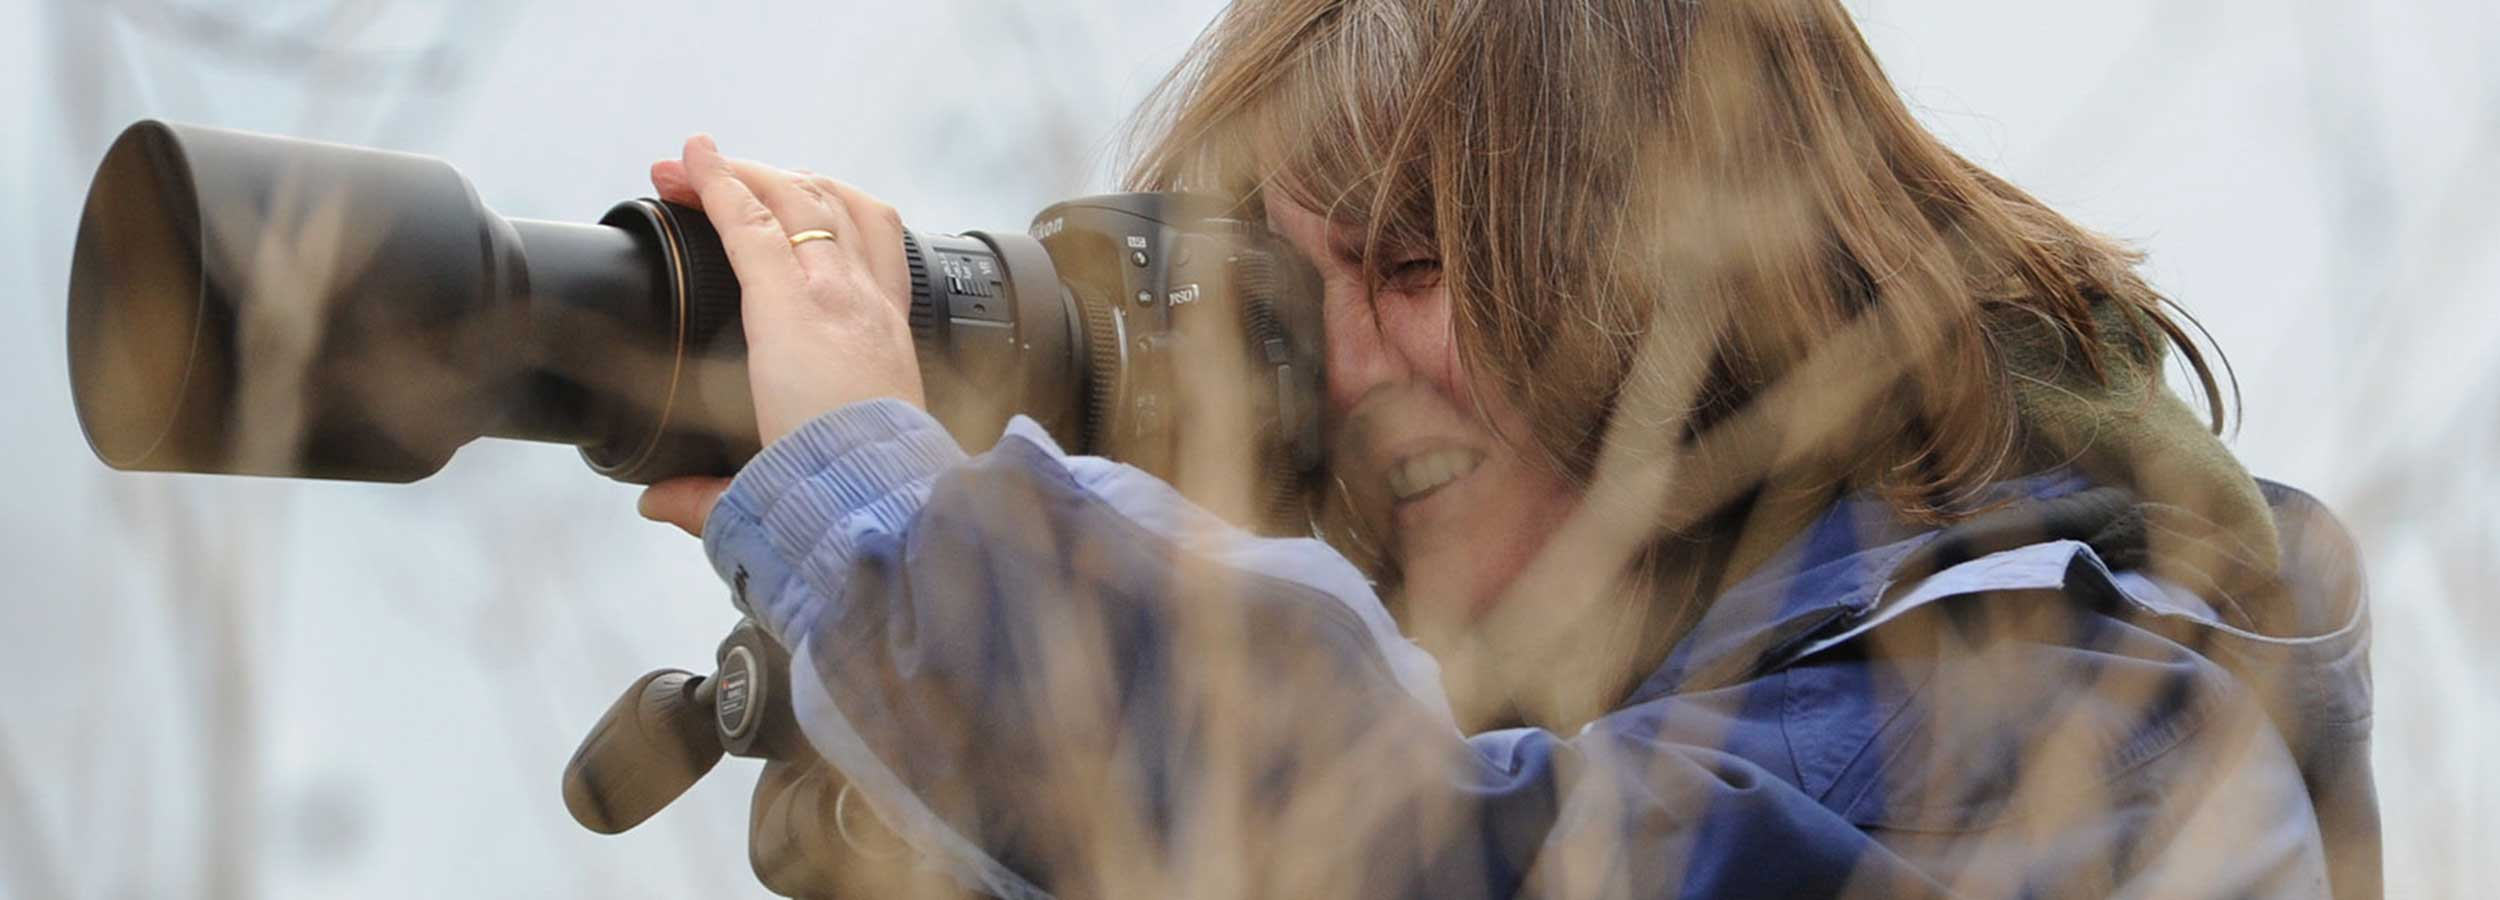 photography-courses-surrey